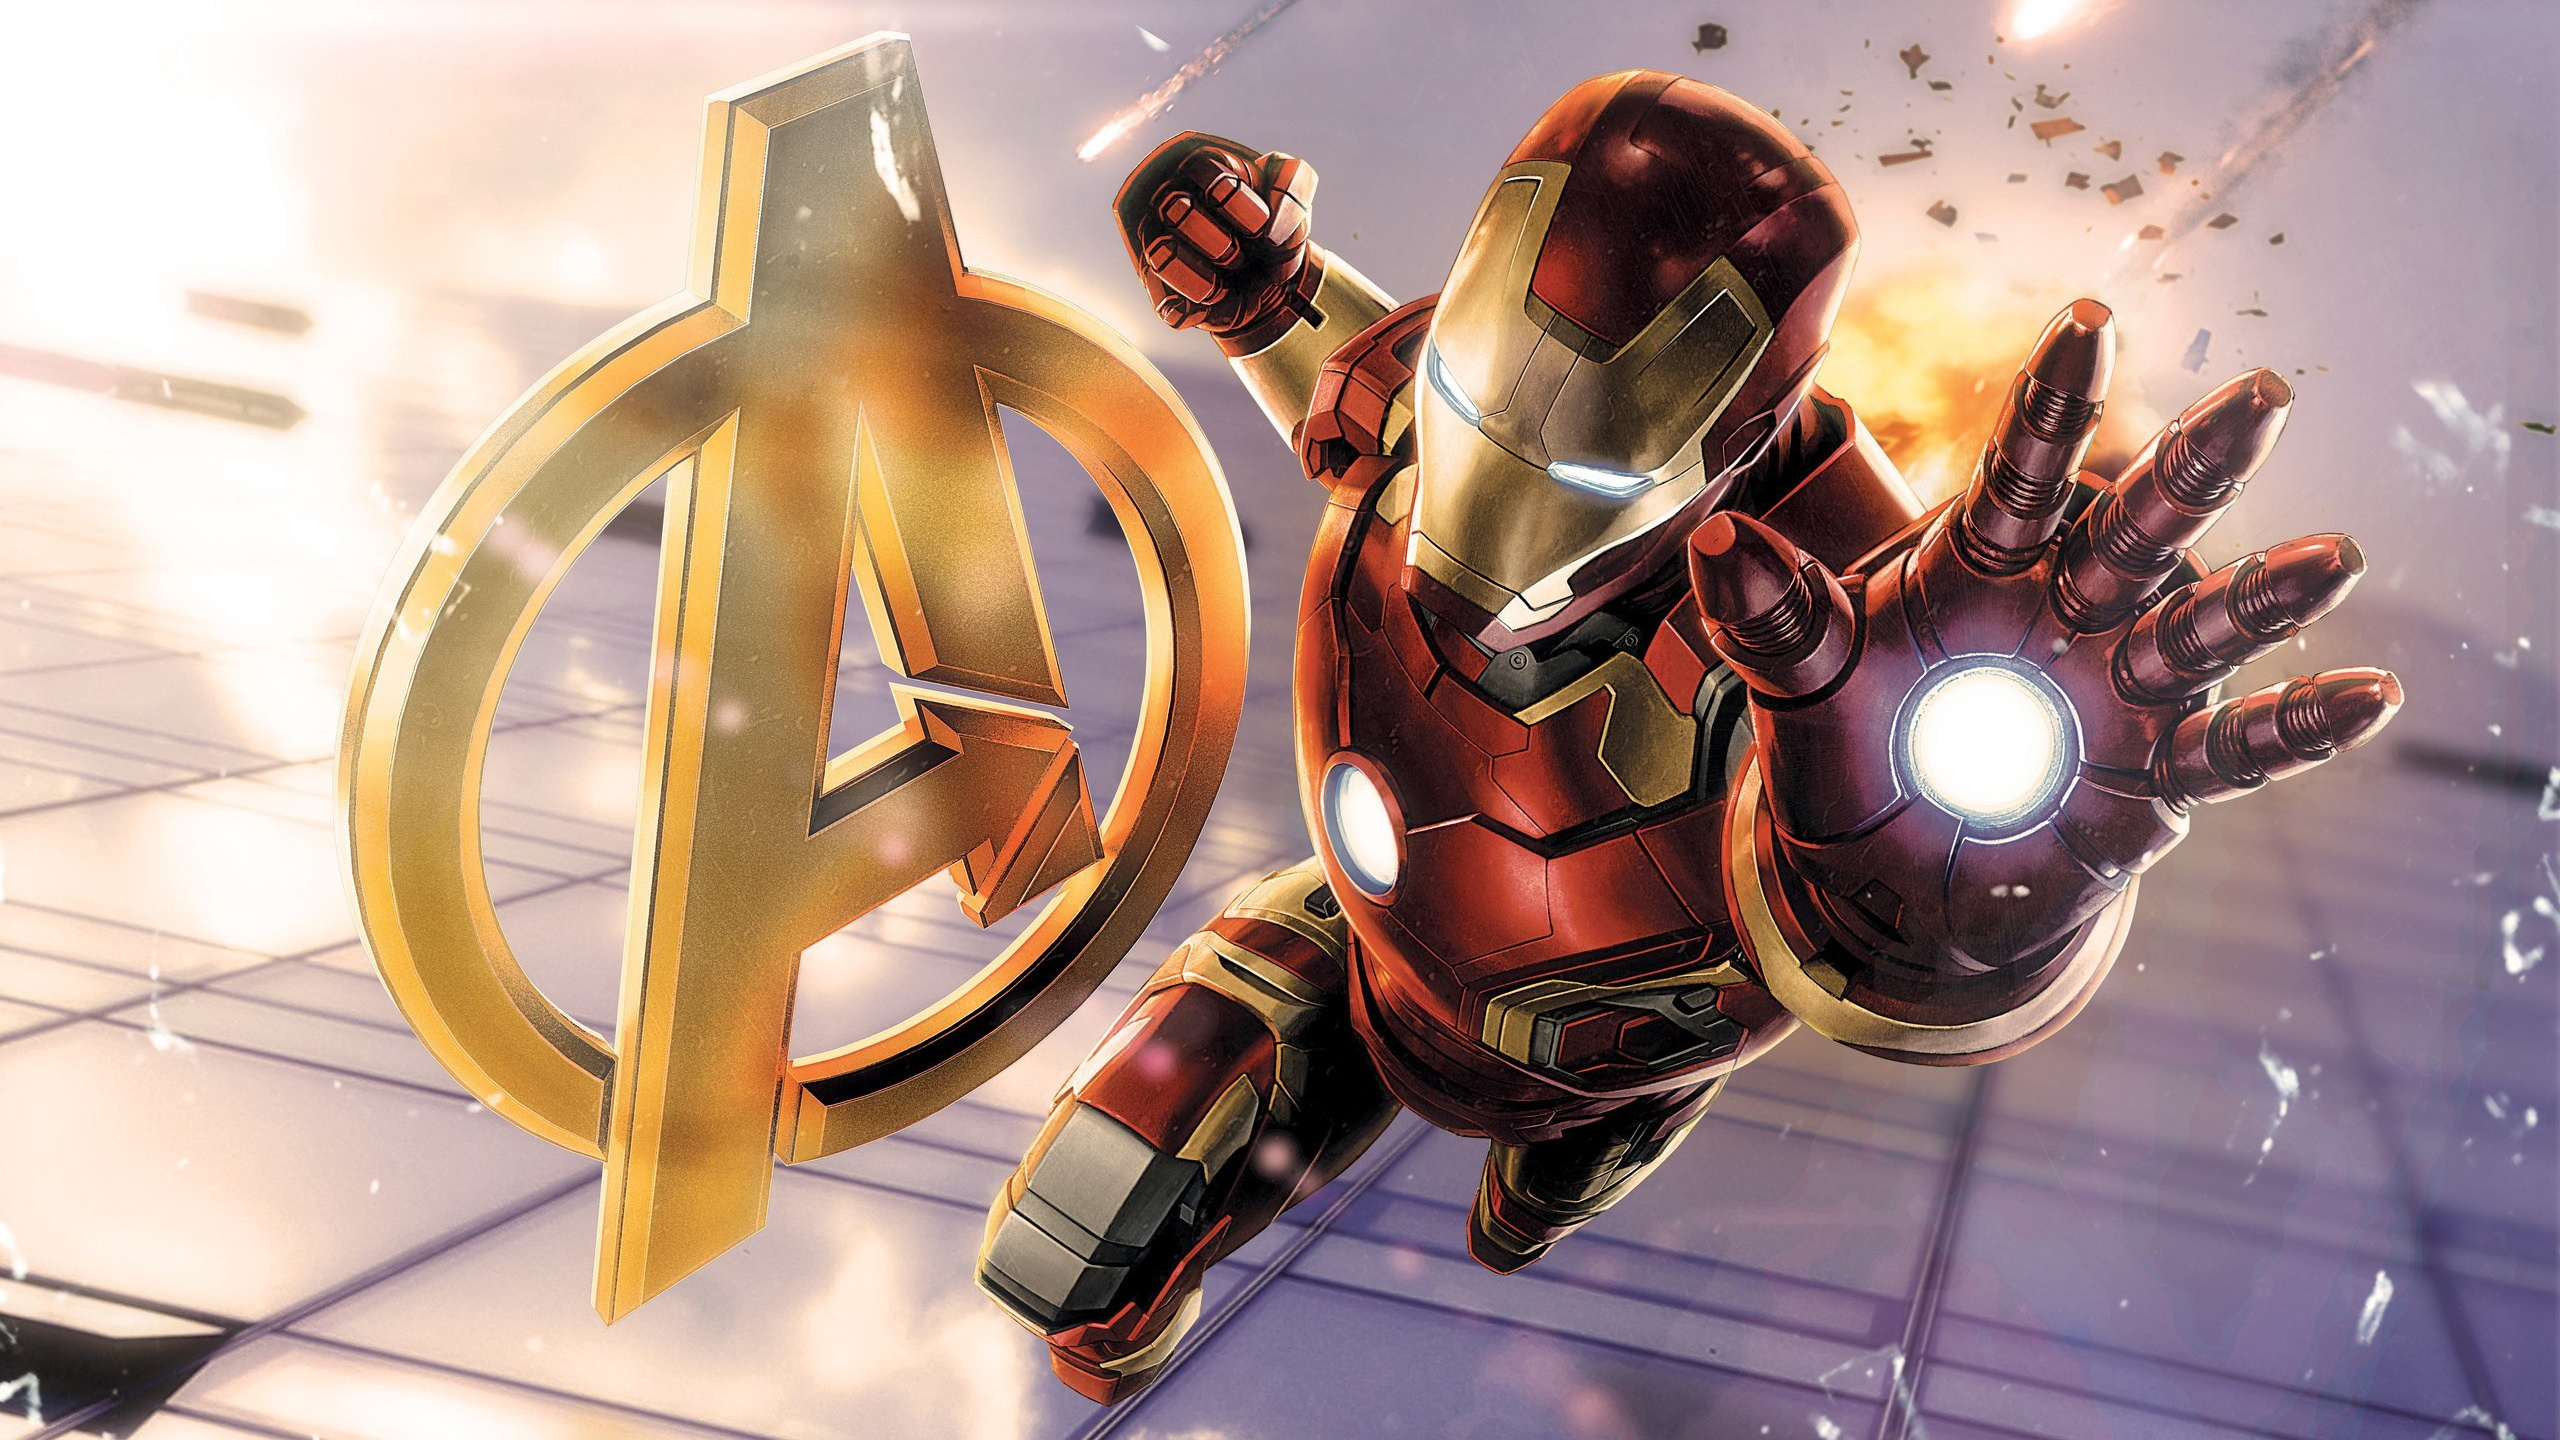 Iron Man Avengers Wallpapers in jpg format for free download